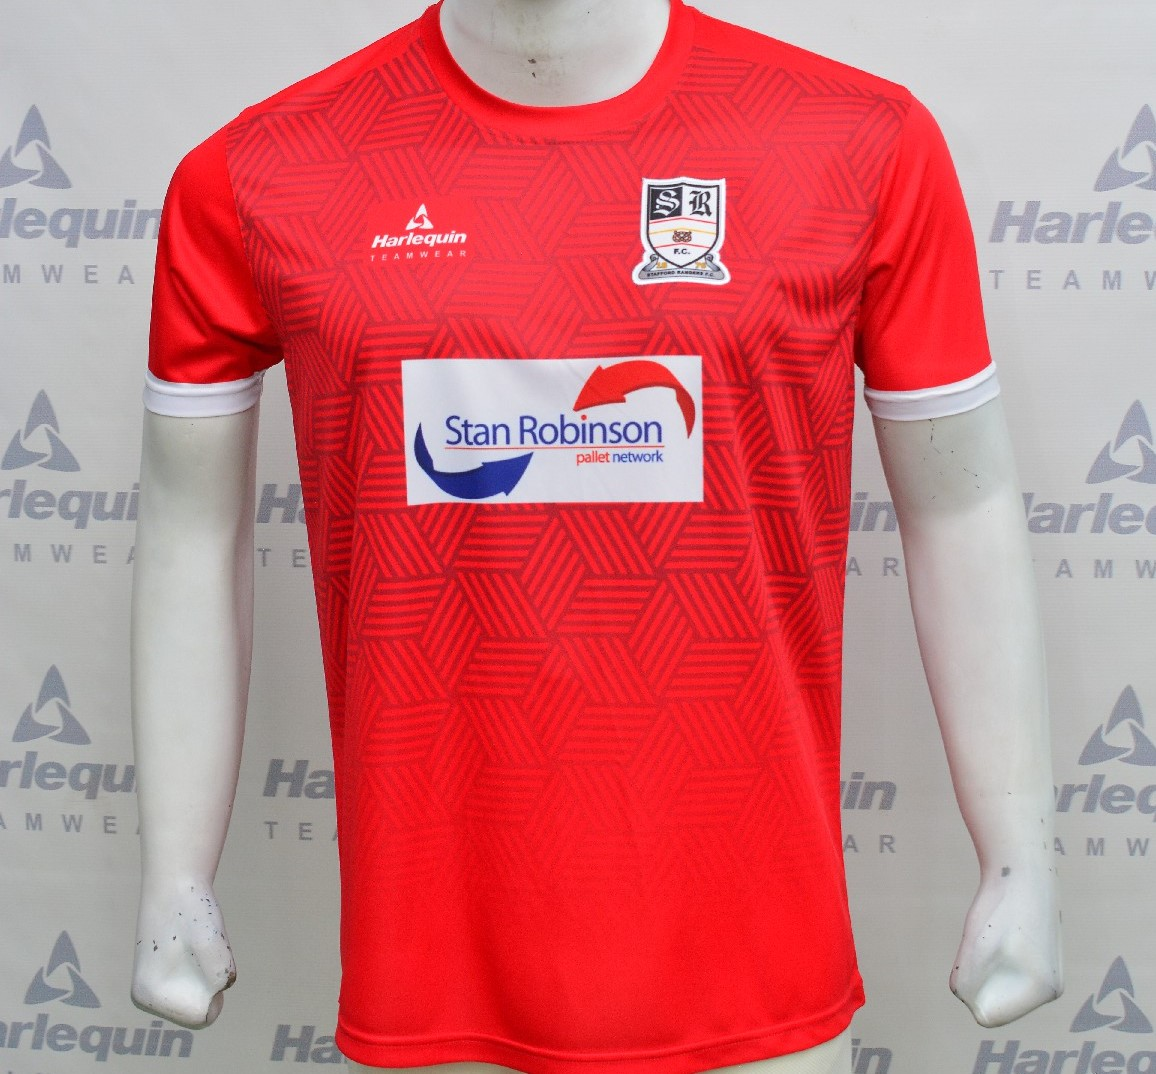 2020 Stafford Rangers Away Shirt (Adult)